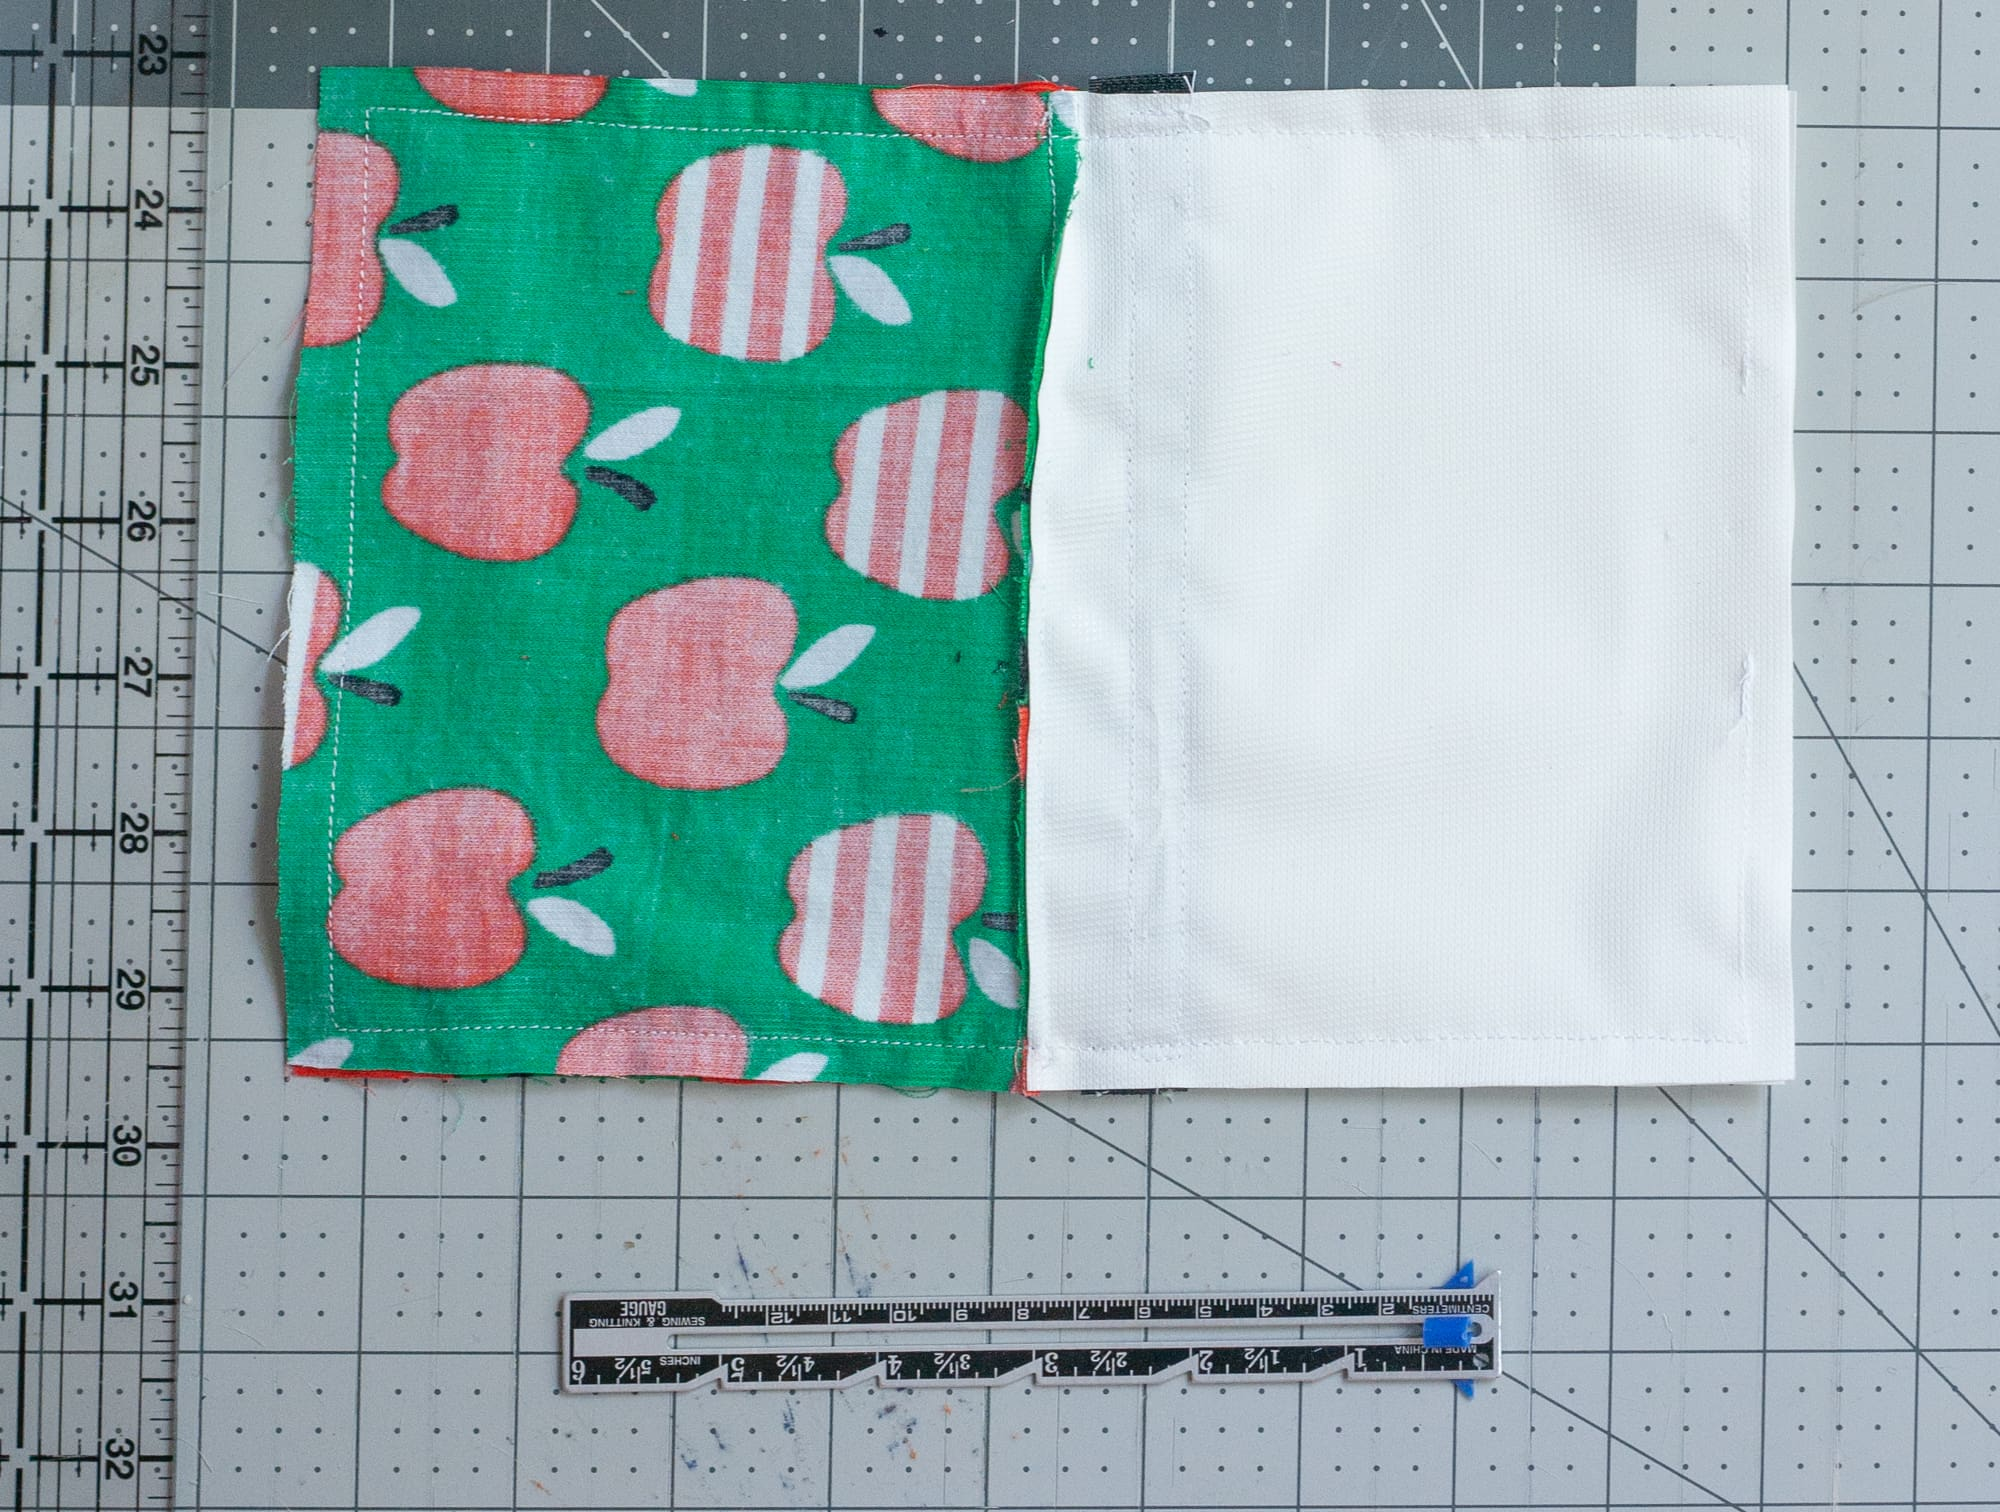 Pieces of fabric for small bags sewn together